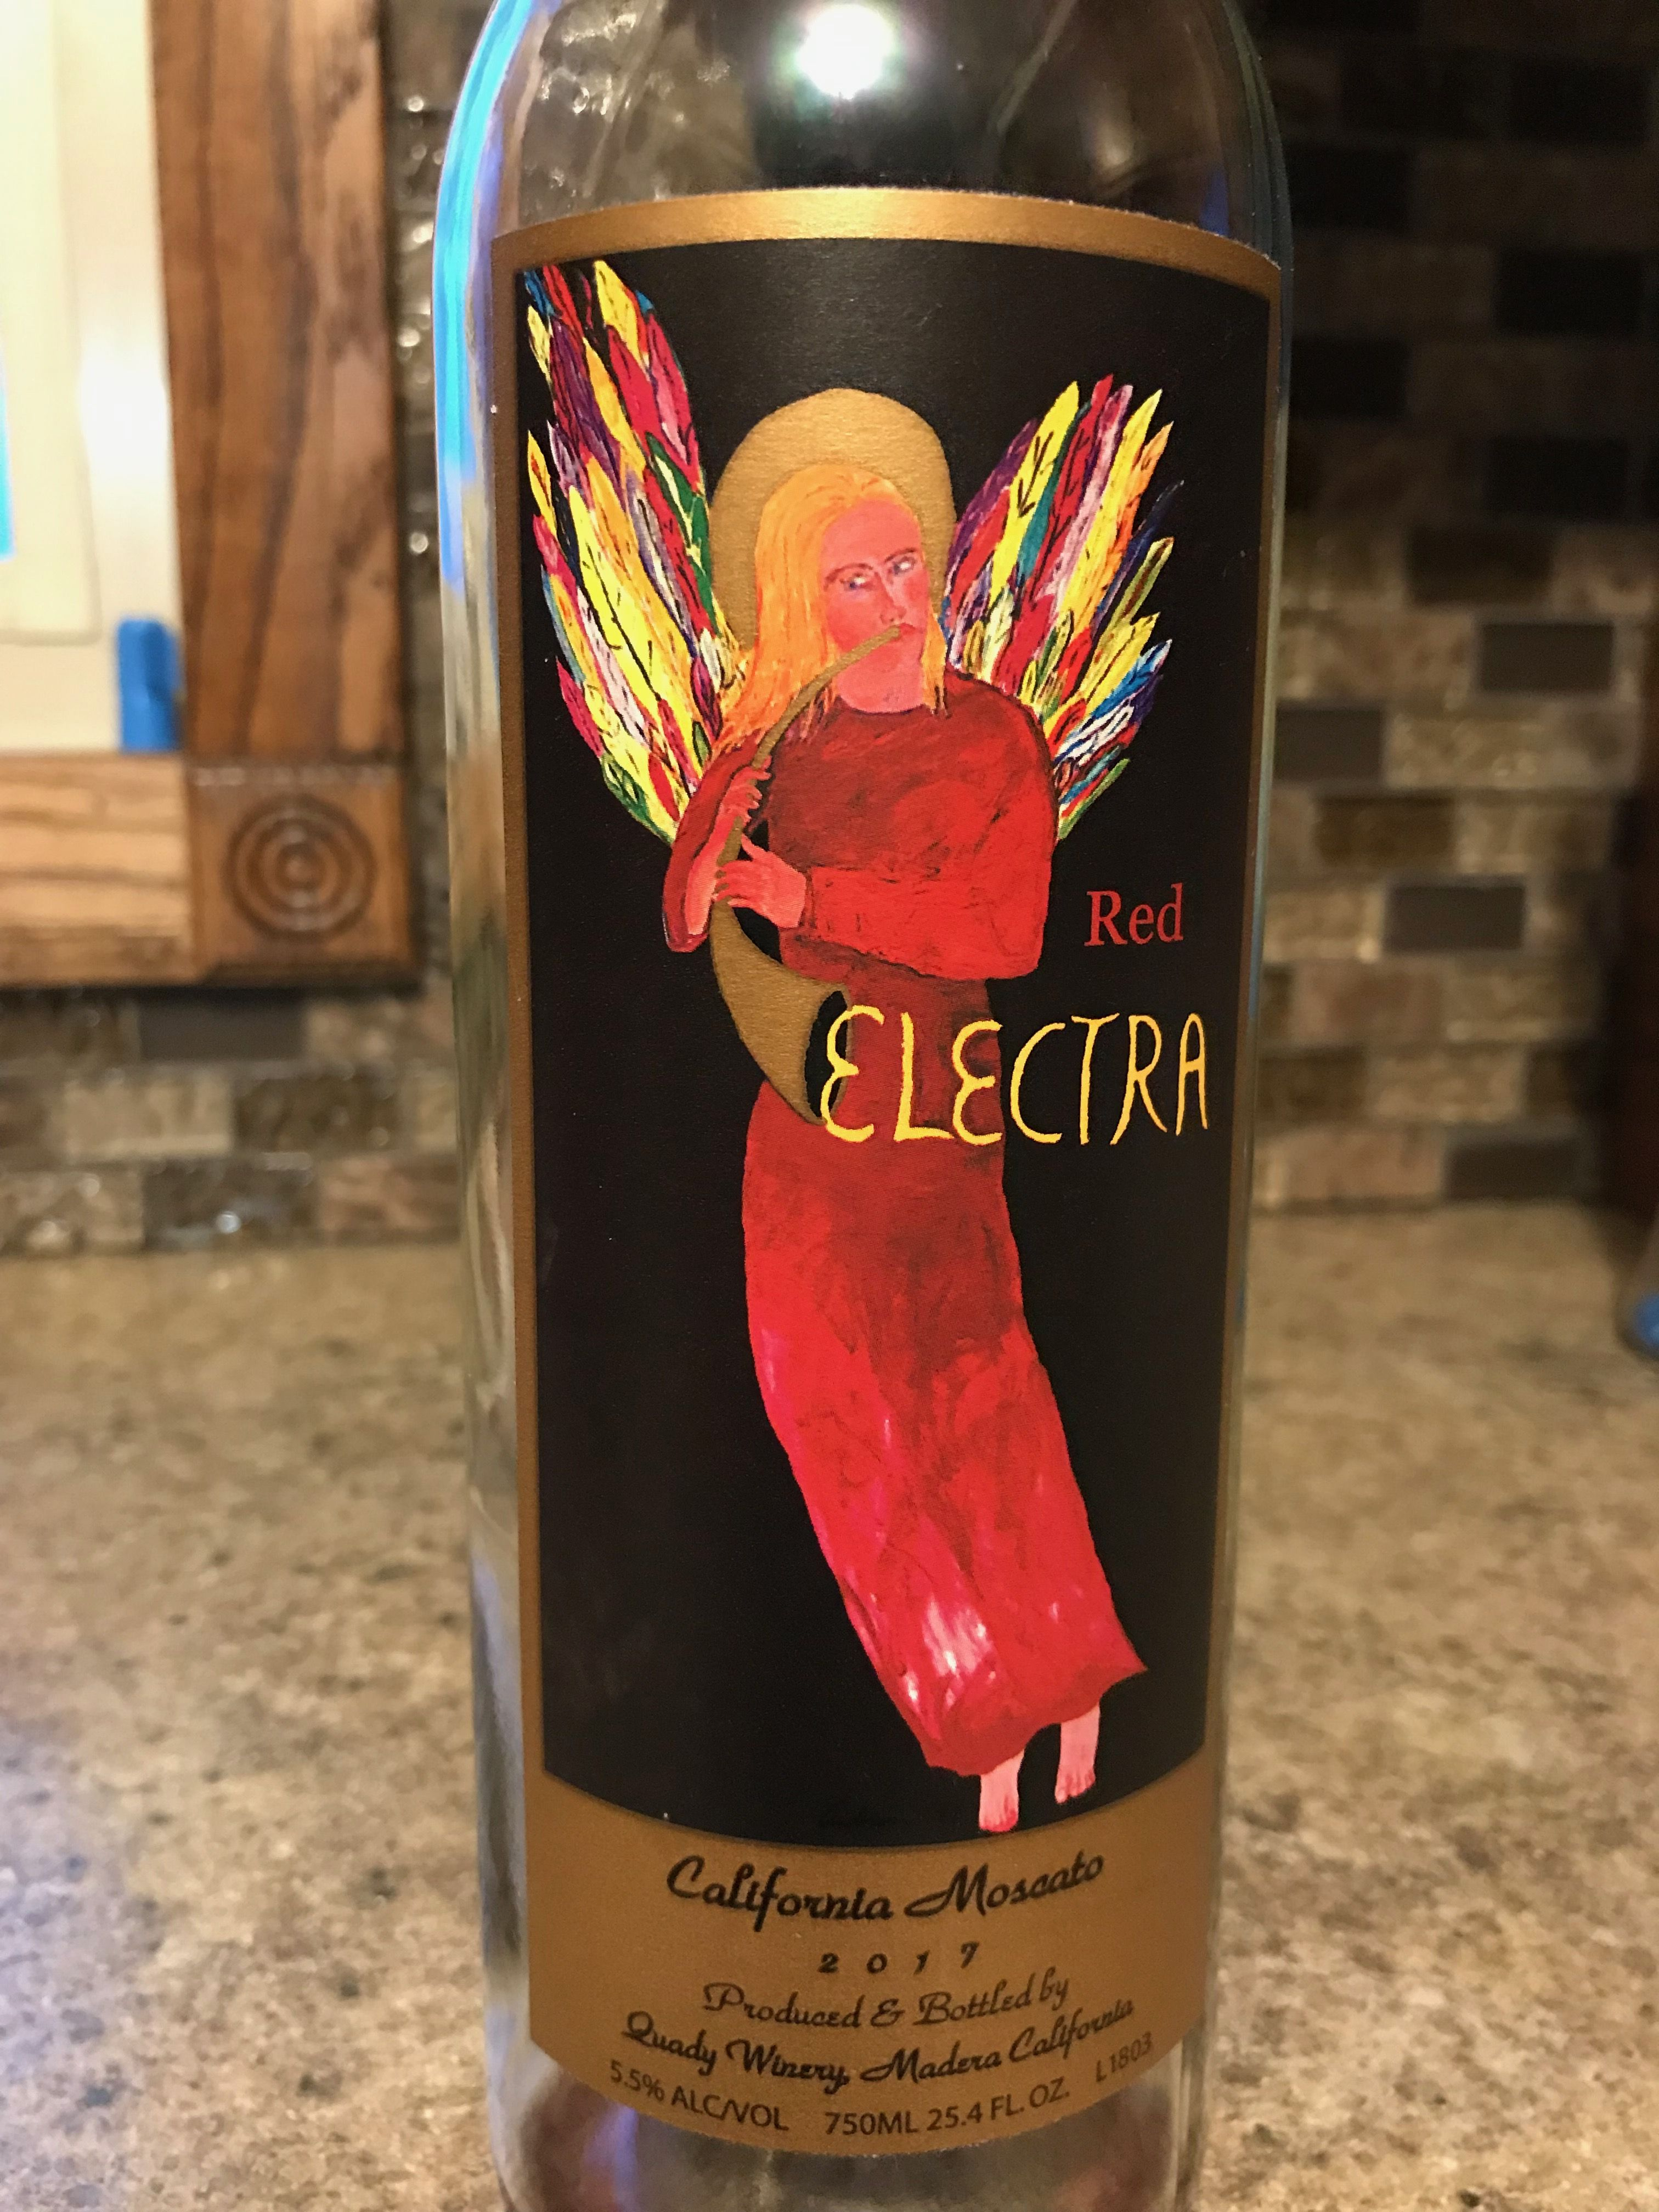 Red Electra California Moscato Moscato Wines Glassware